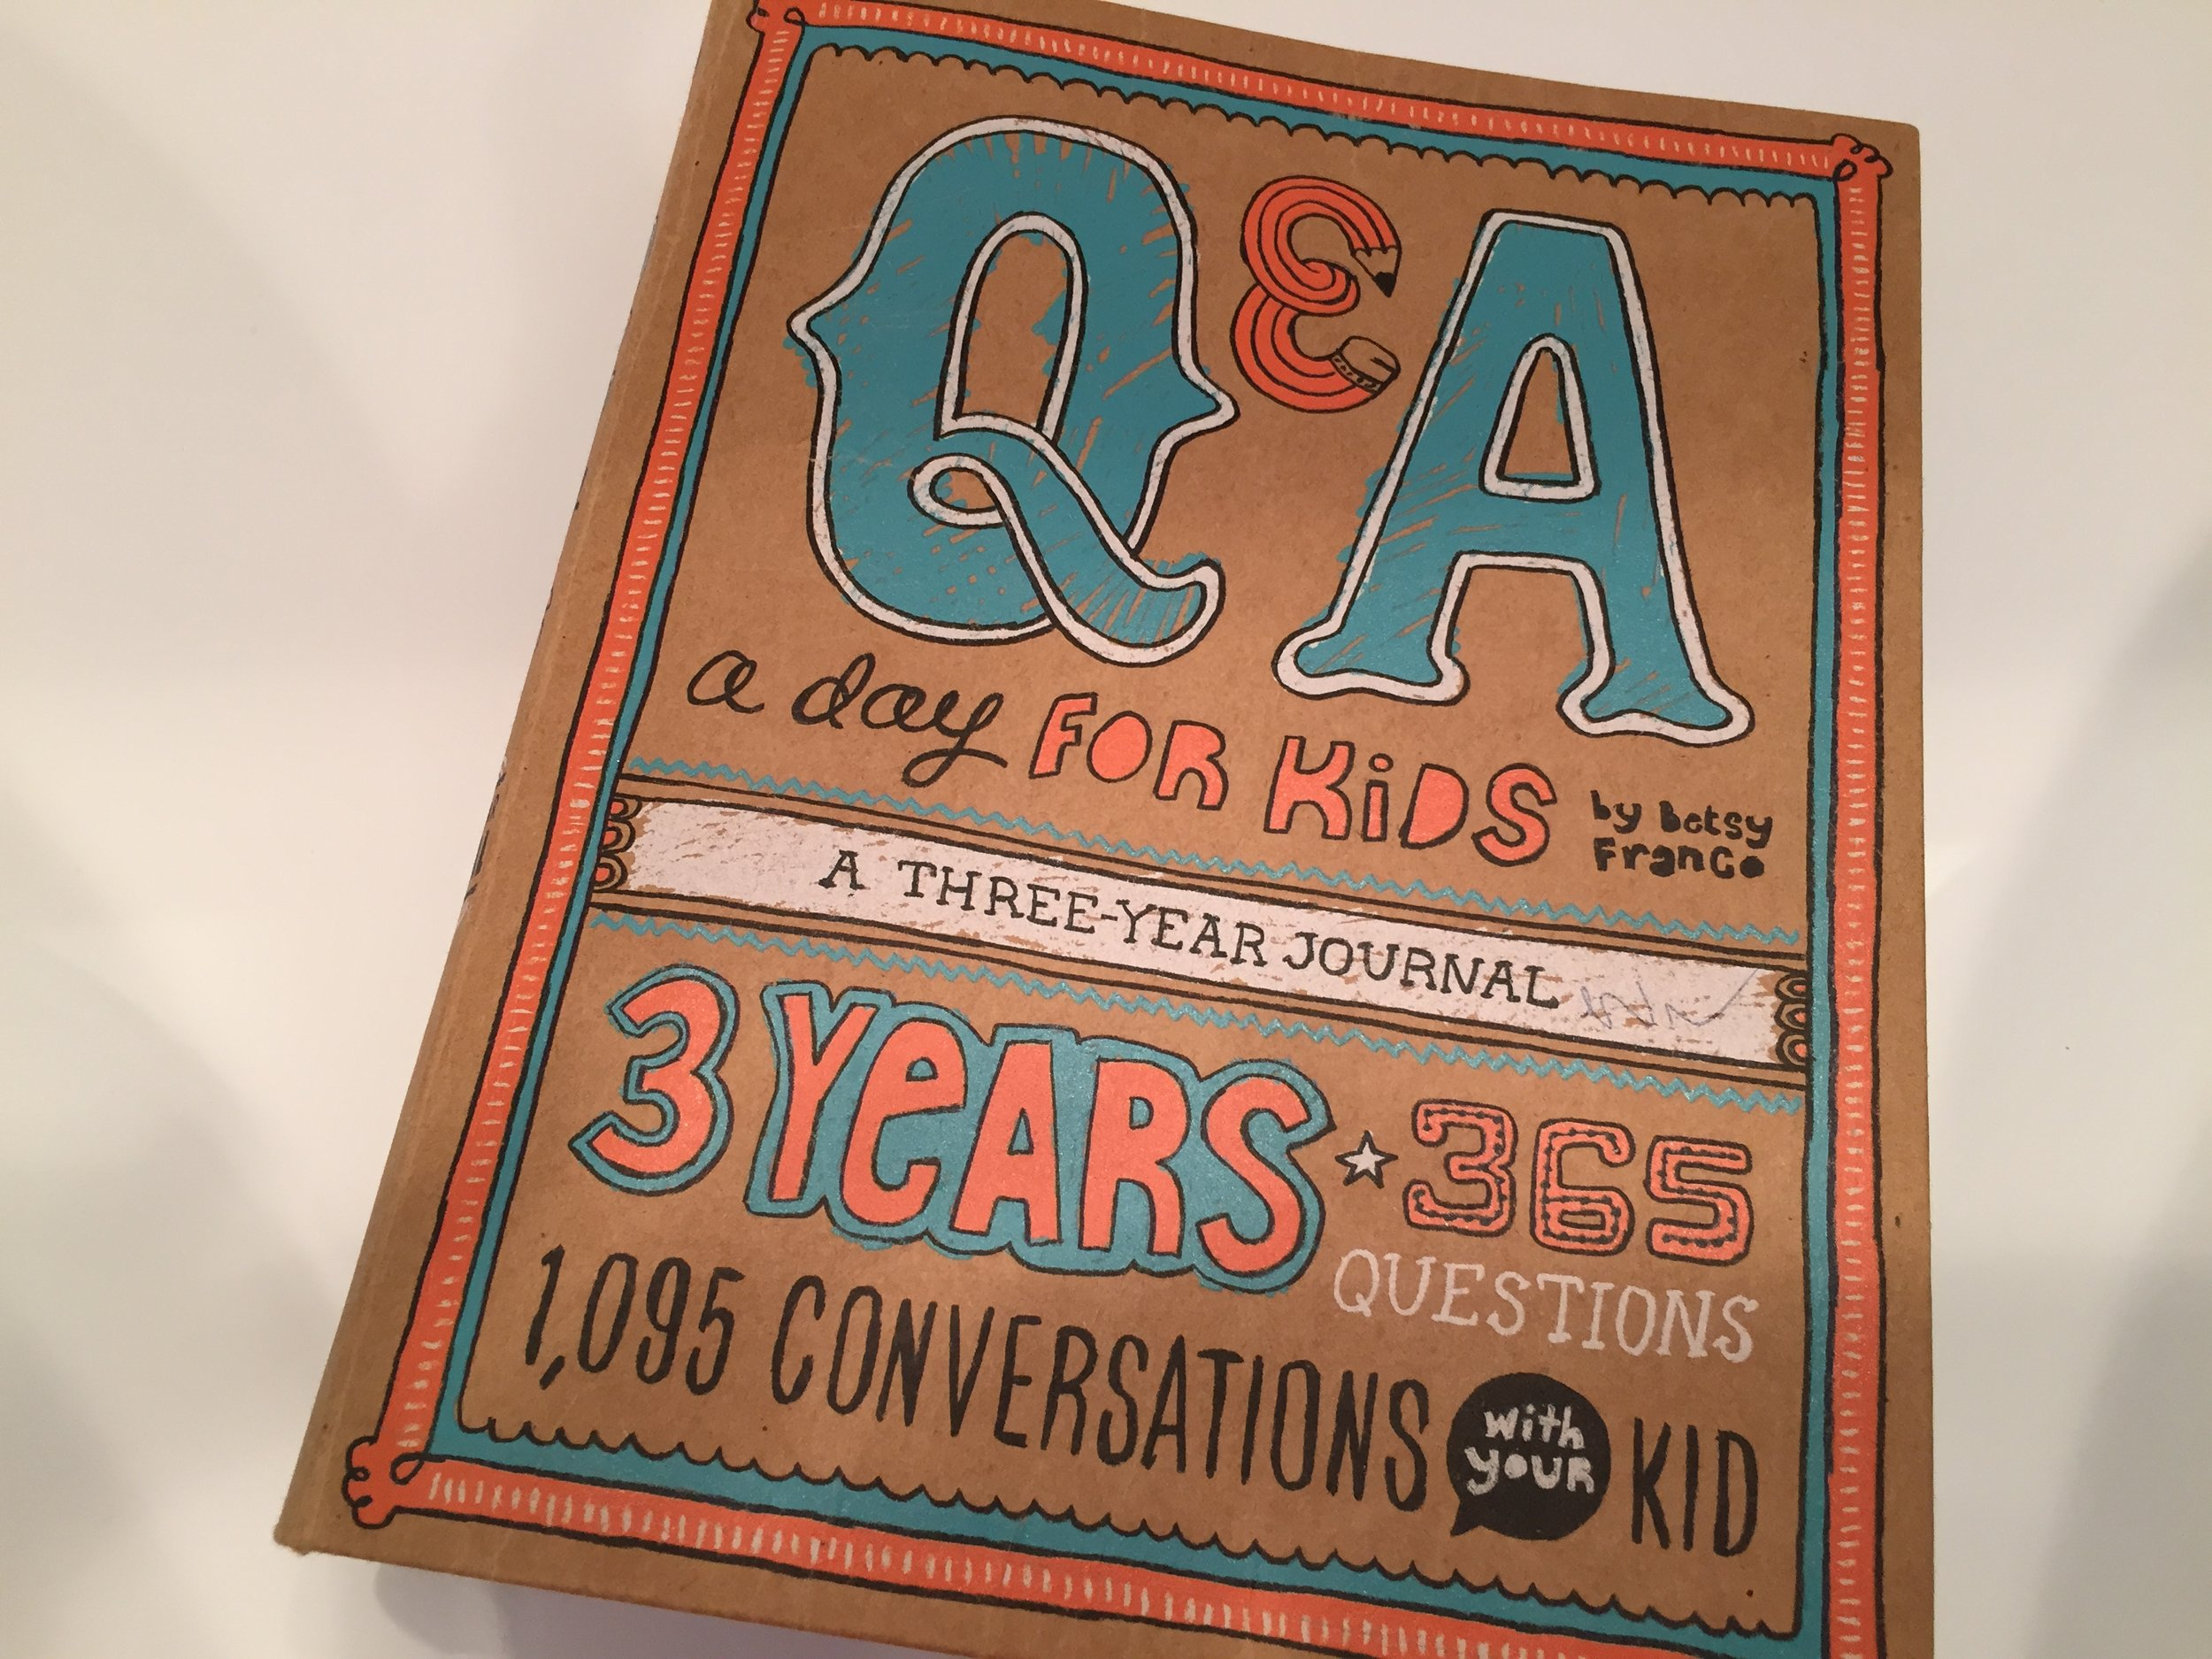 Q&A a day, Journaling, The Everyday Journalista, Everyday Journalista, Family Fun, Parent Child Relationship,